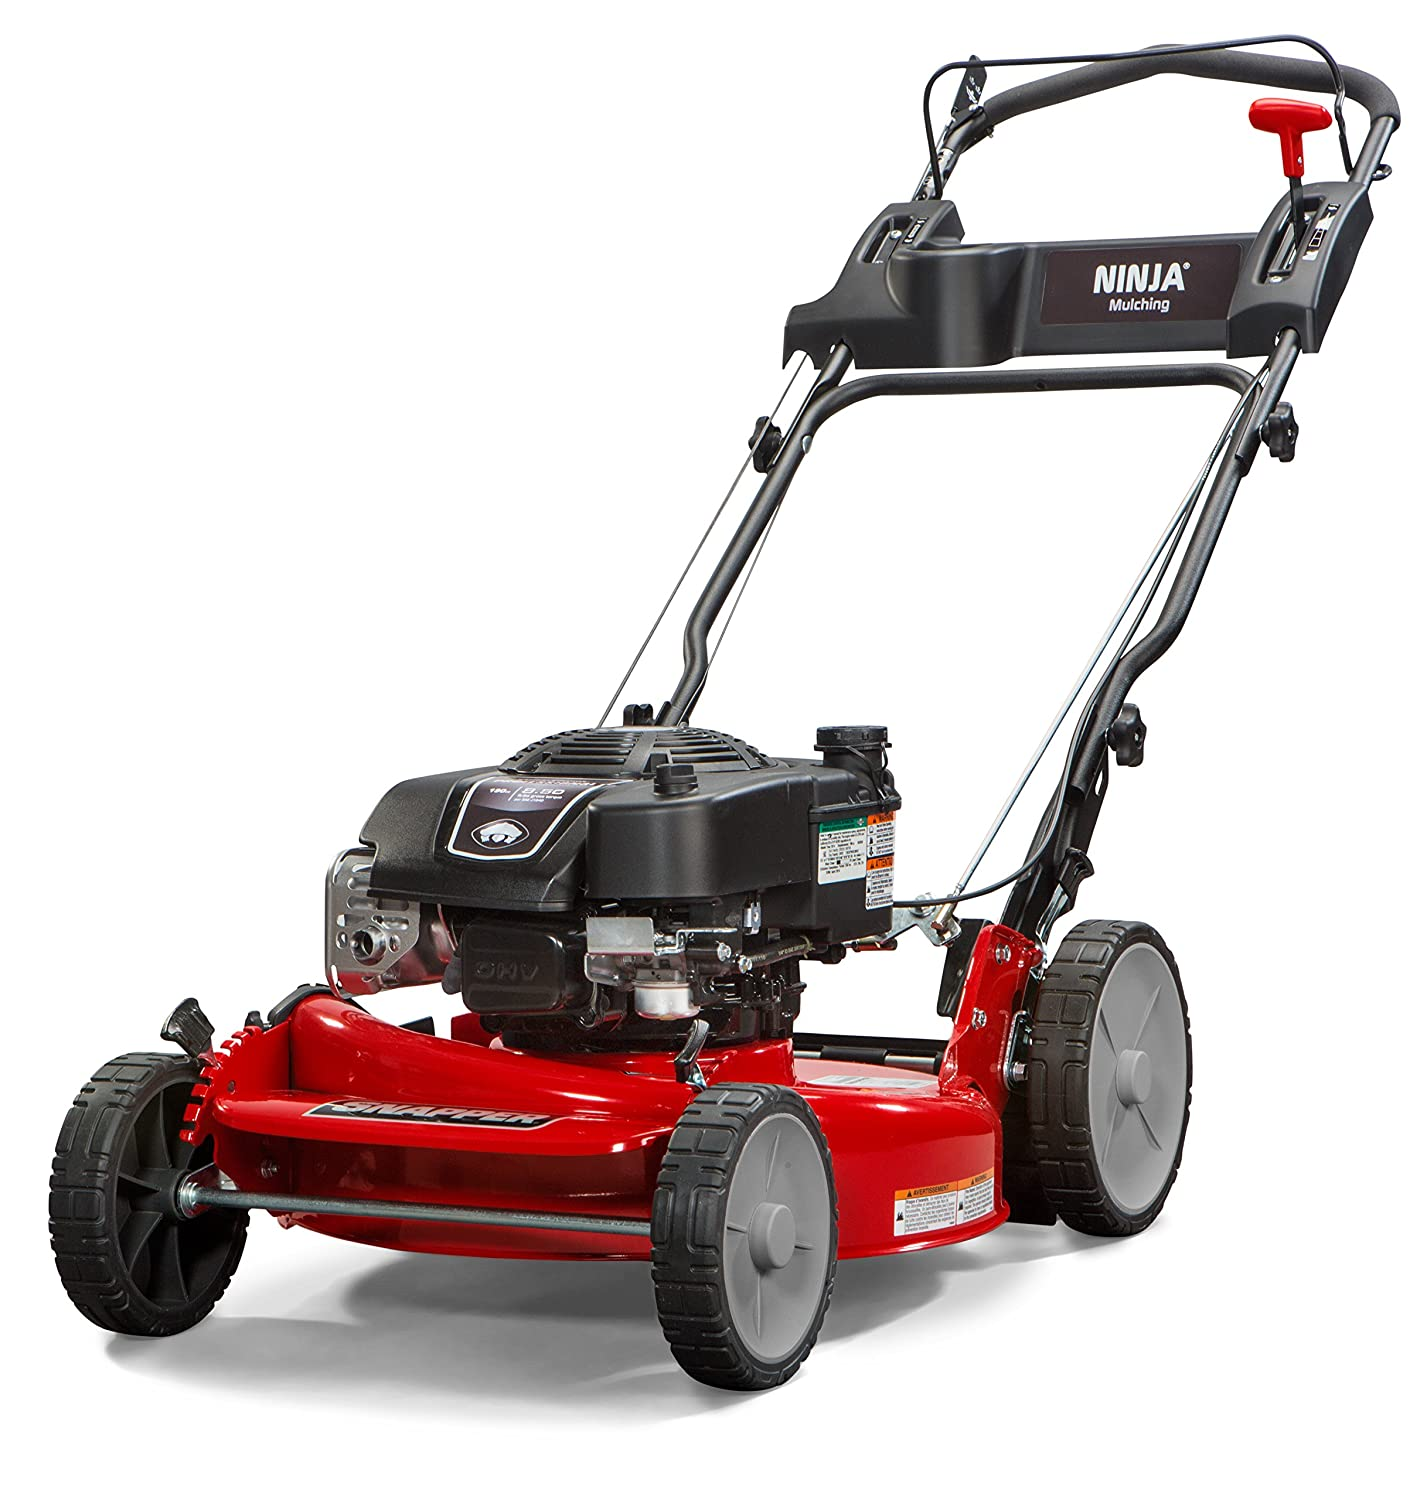 Snapper RP2185020 / 7800981 NINJA 190cc 3-N-1 Rear Wheel Drive Variable Speed Self-Propelled Lawn Mower